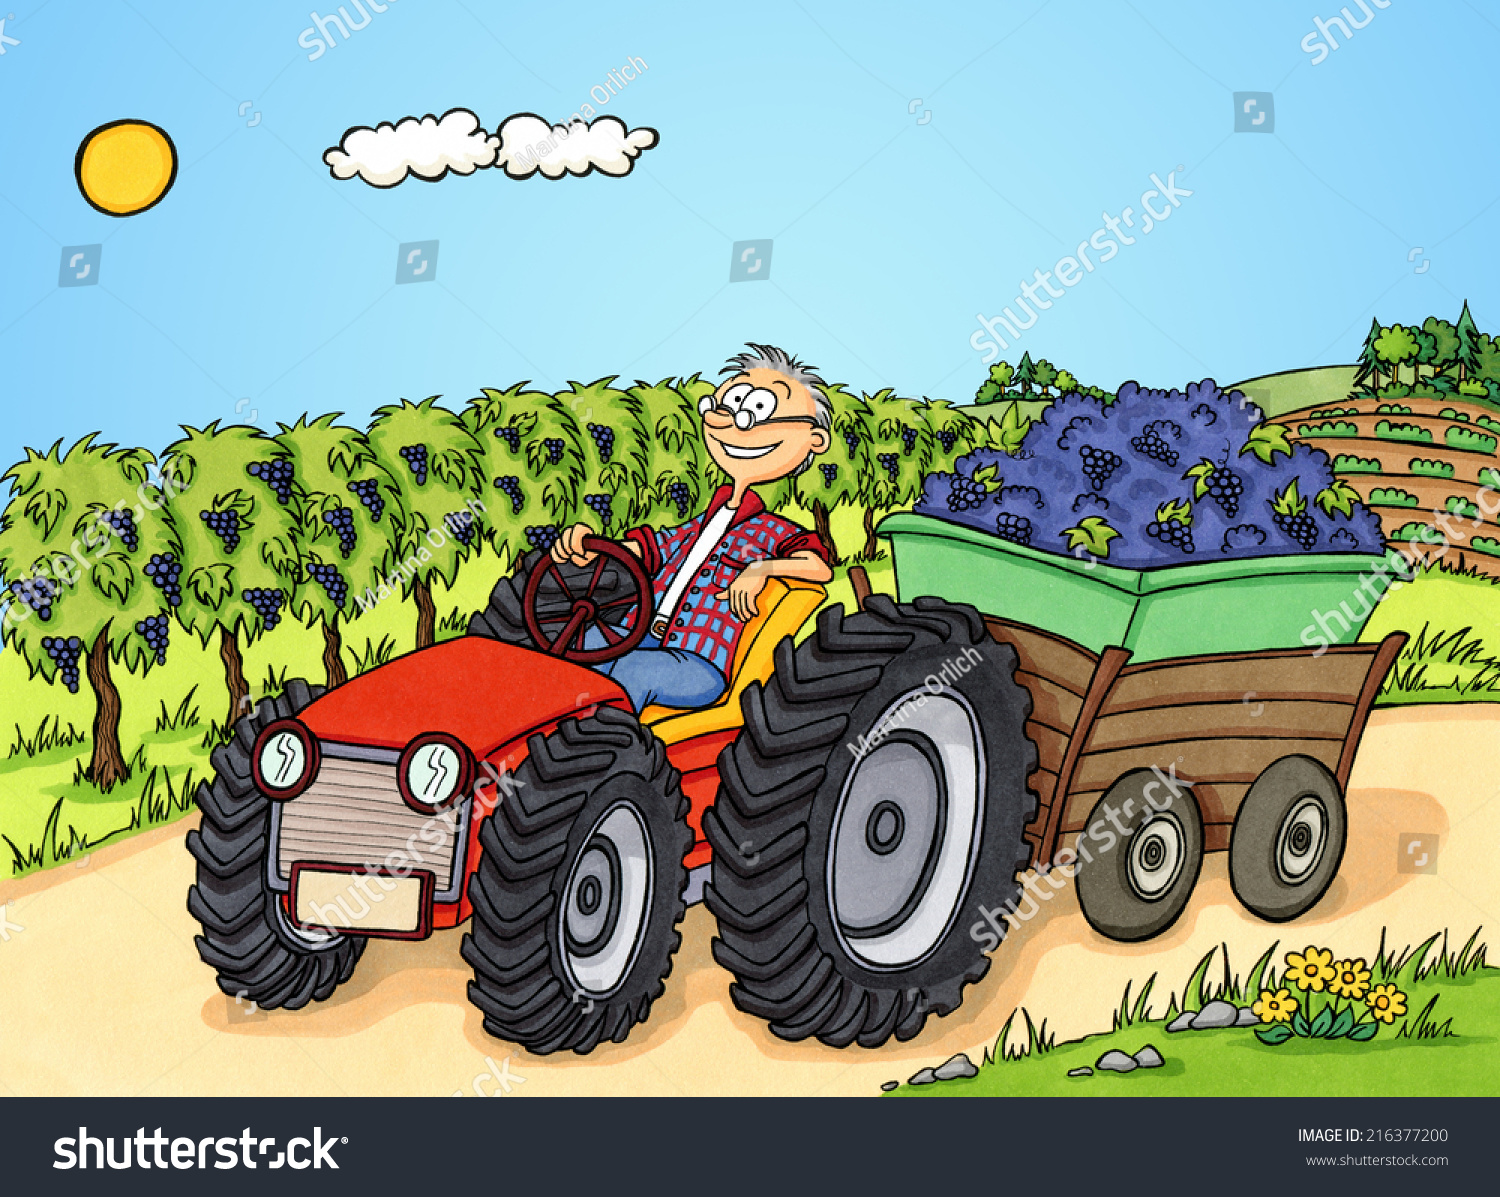 Drawing Man On Tractor : Cartoon man transporting grapes tractor stock illustration